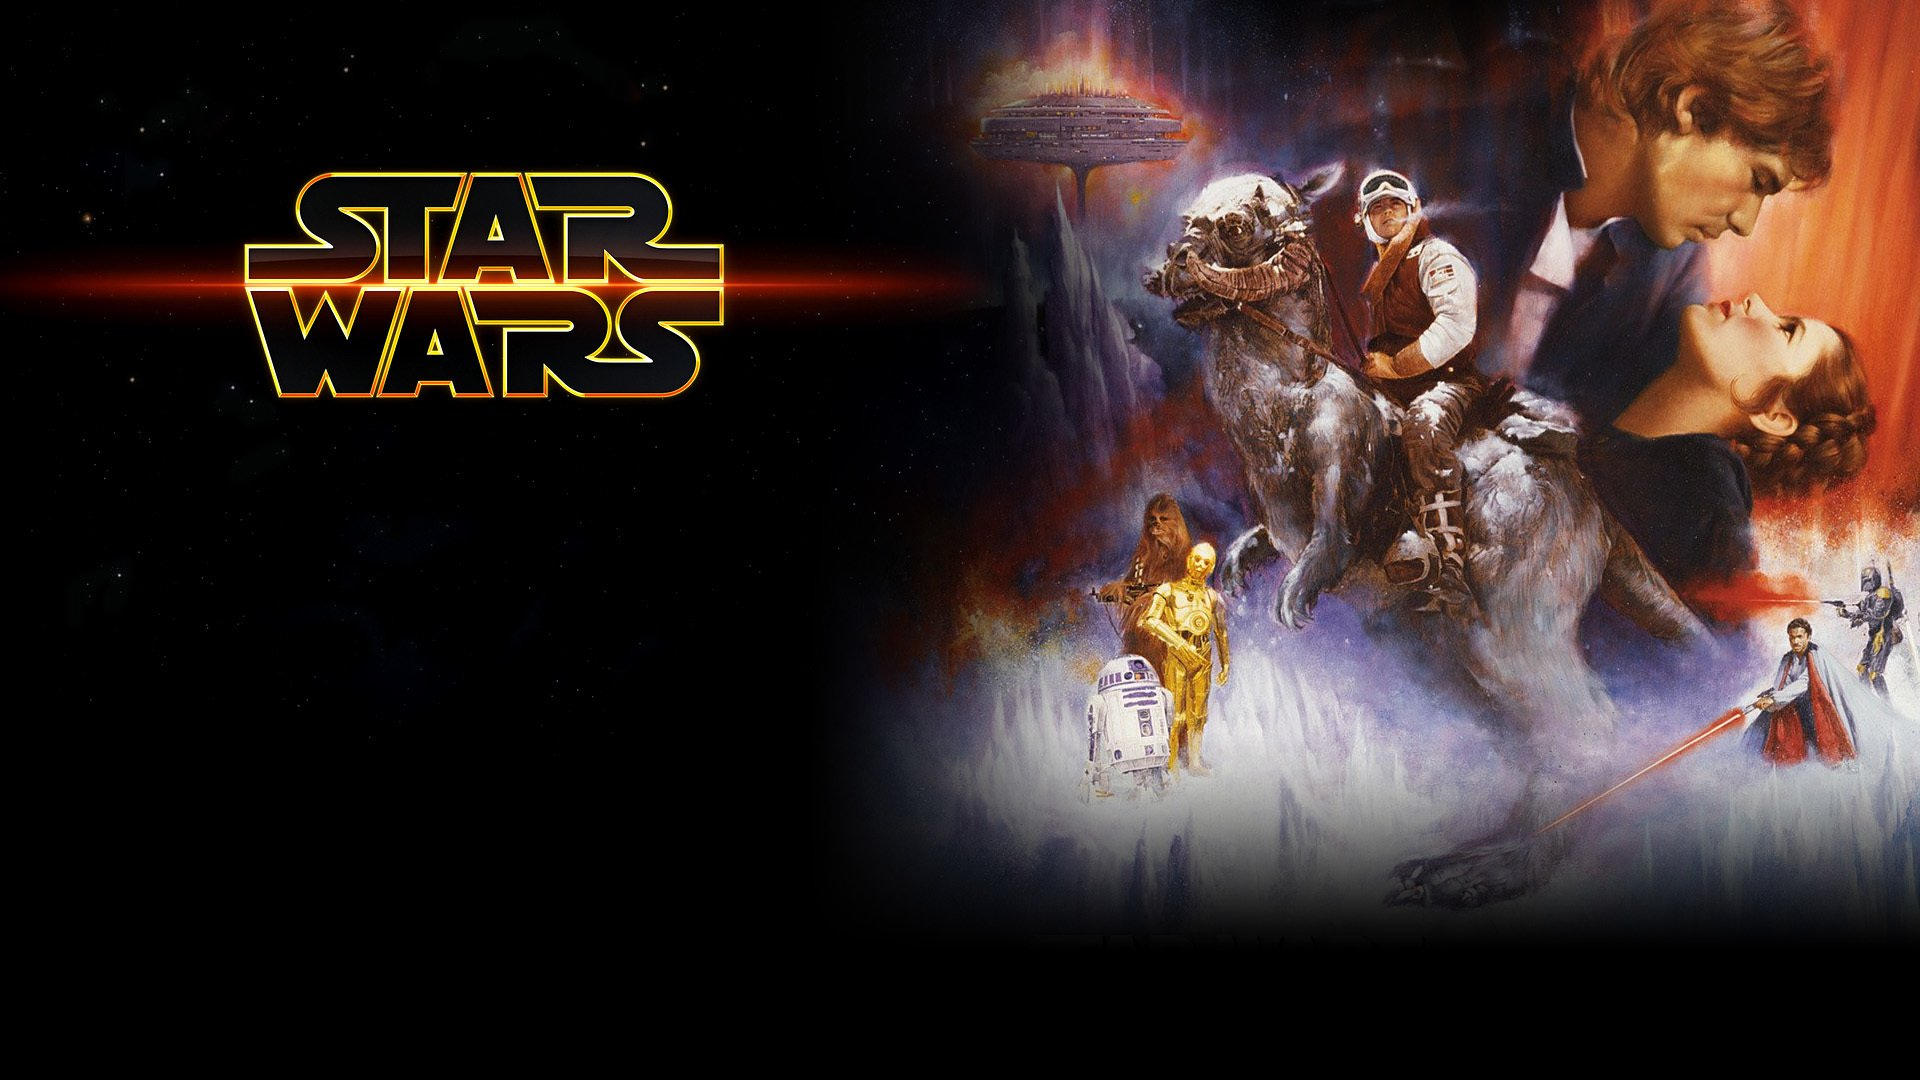 59 Star Wars Episode V The Empire Strikes Back Hd Wallpapers Background Images Wallpaper Abyss